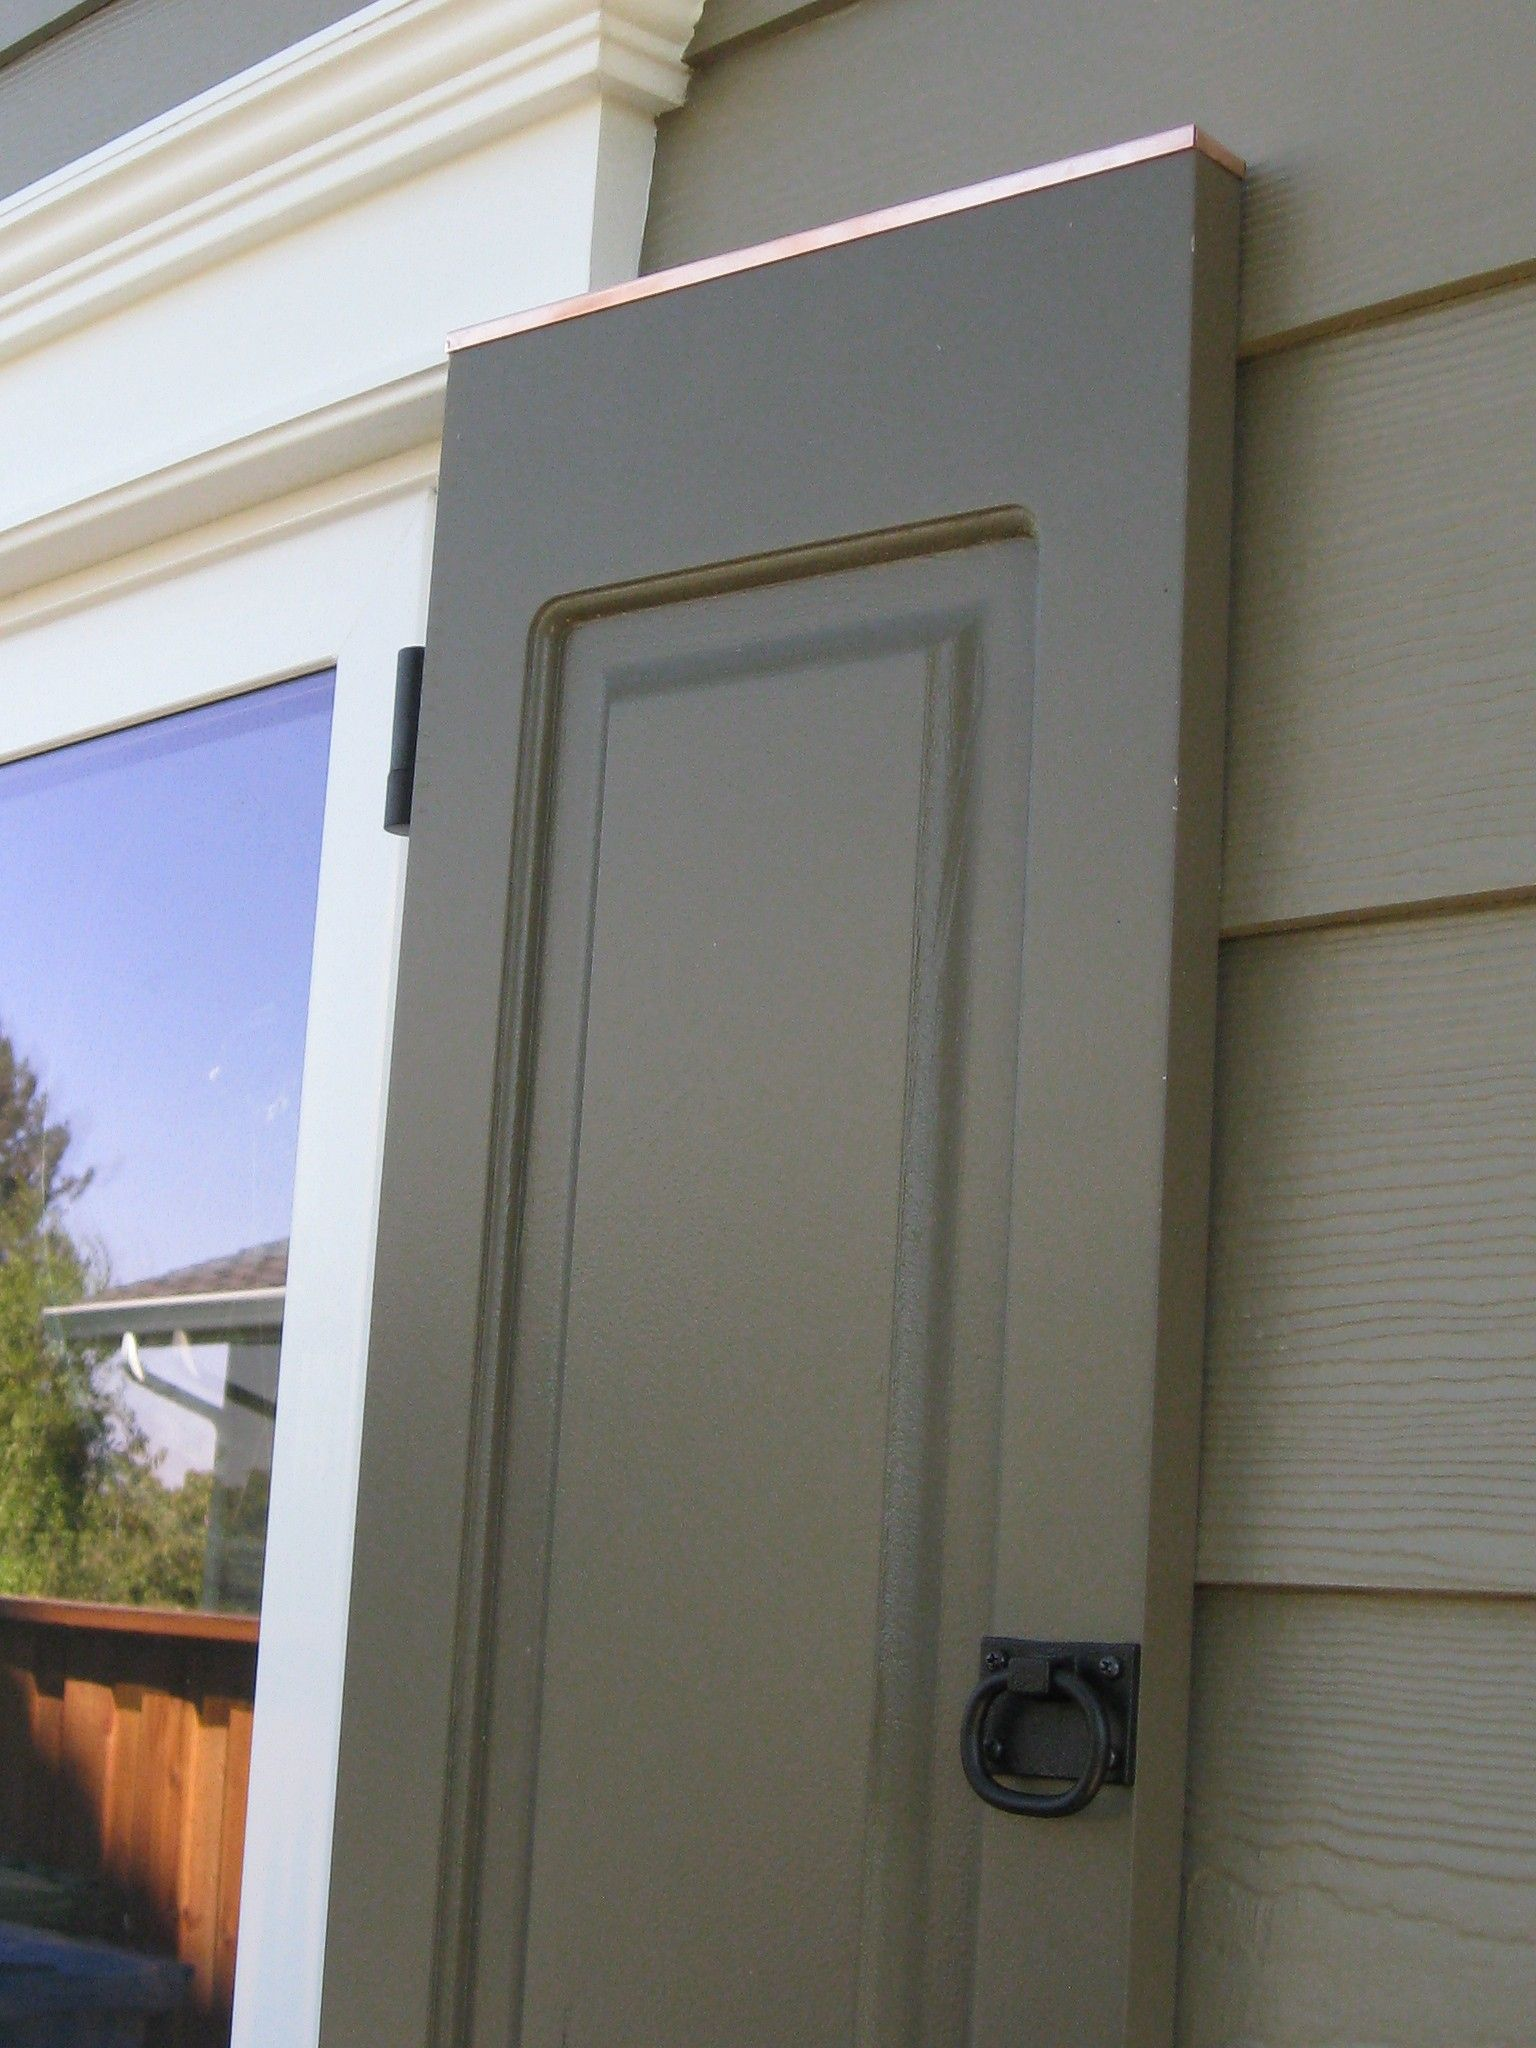 Detail photo of the exterior shutters notice the copper cap on